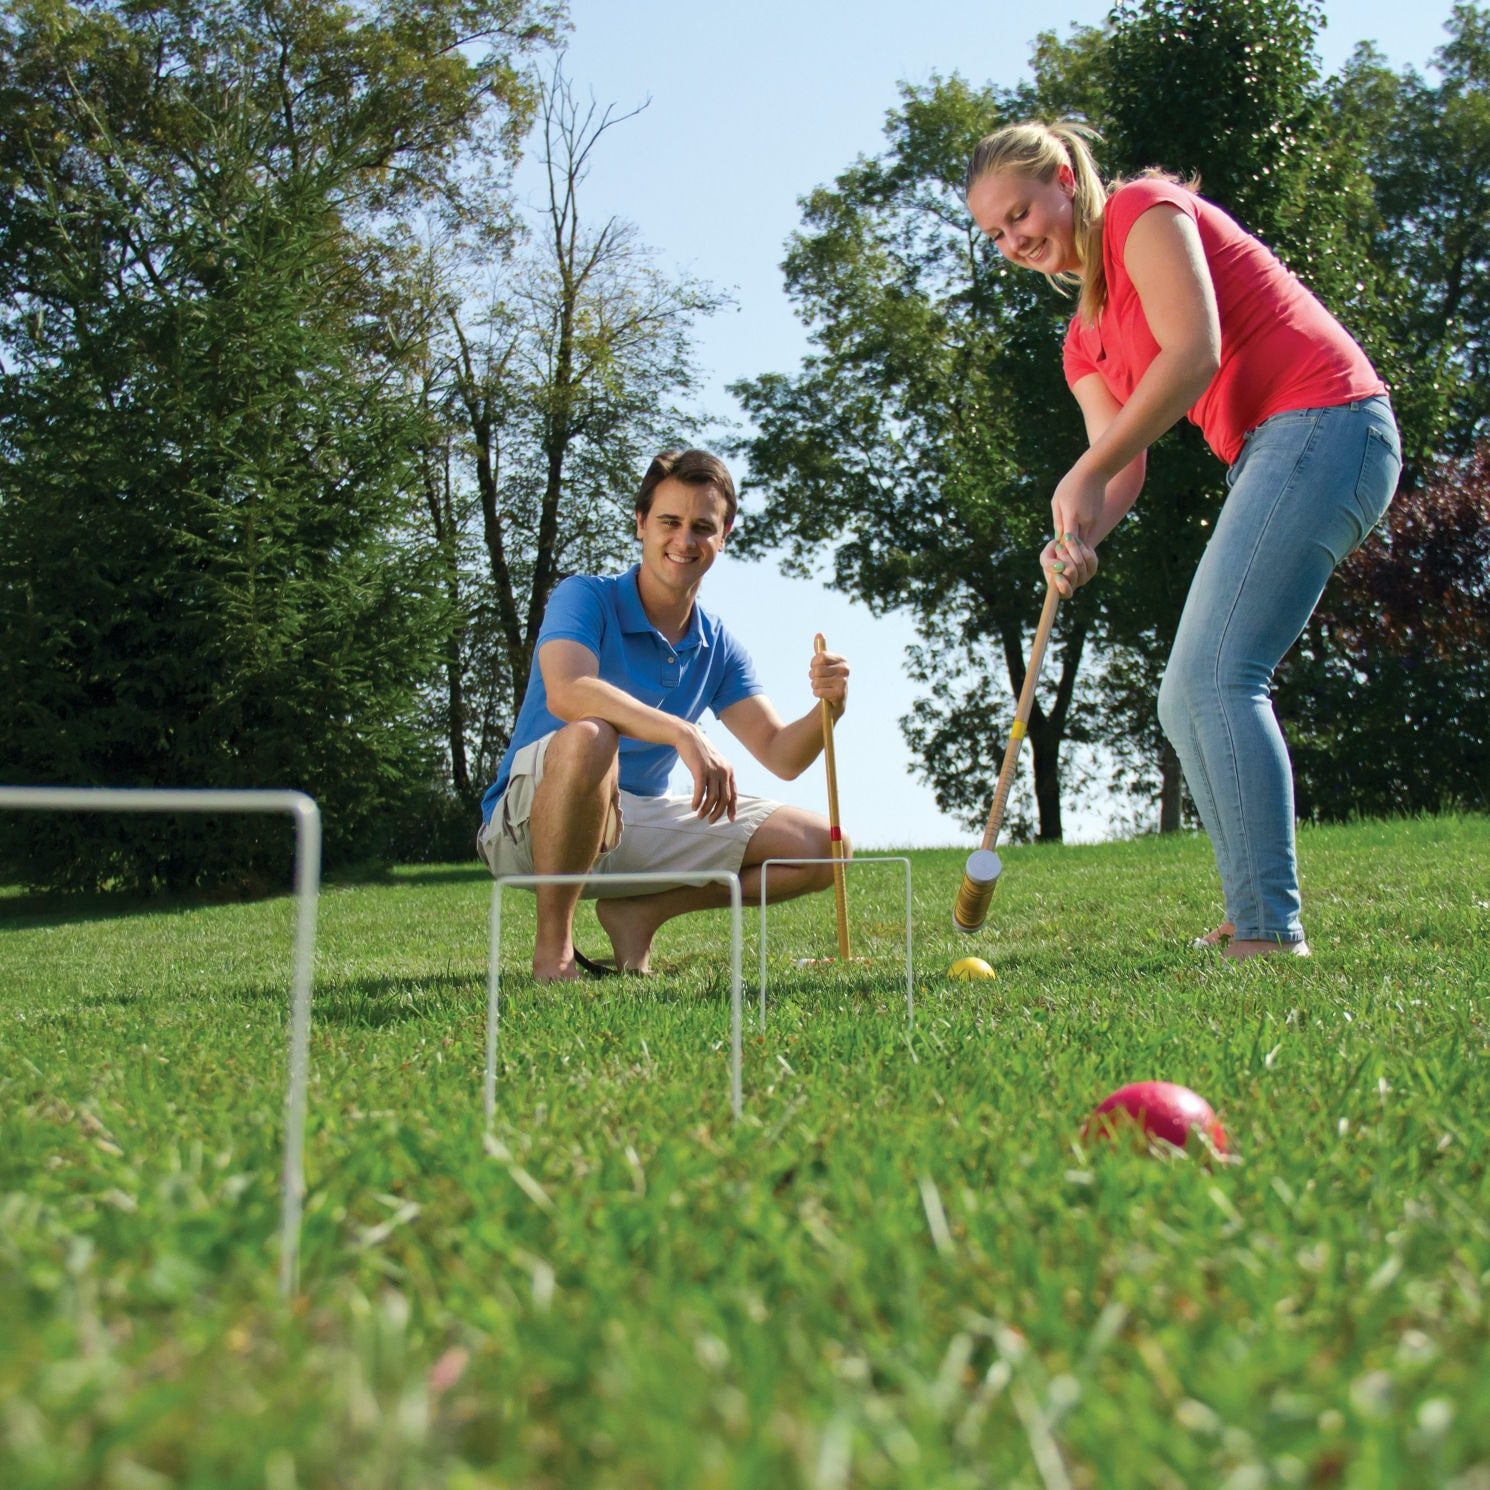 Croquet two